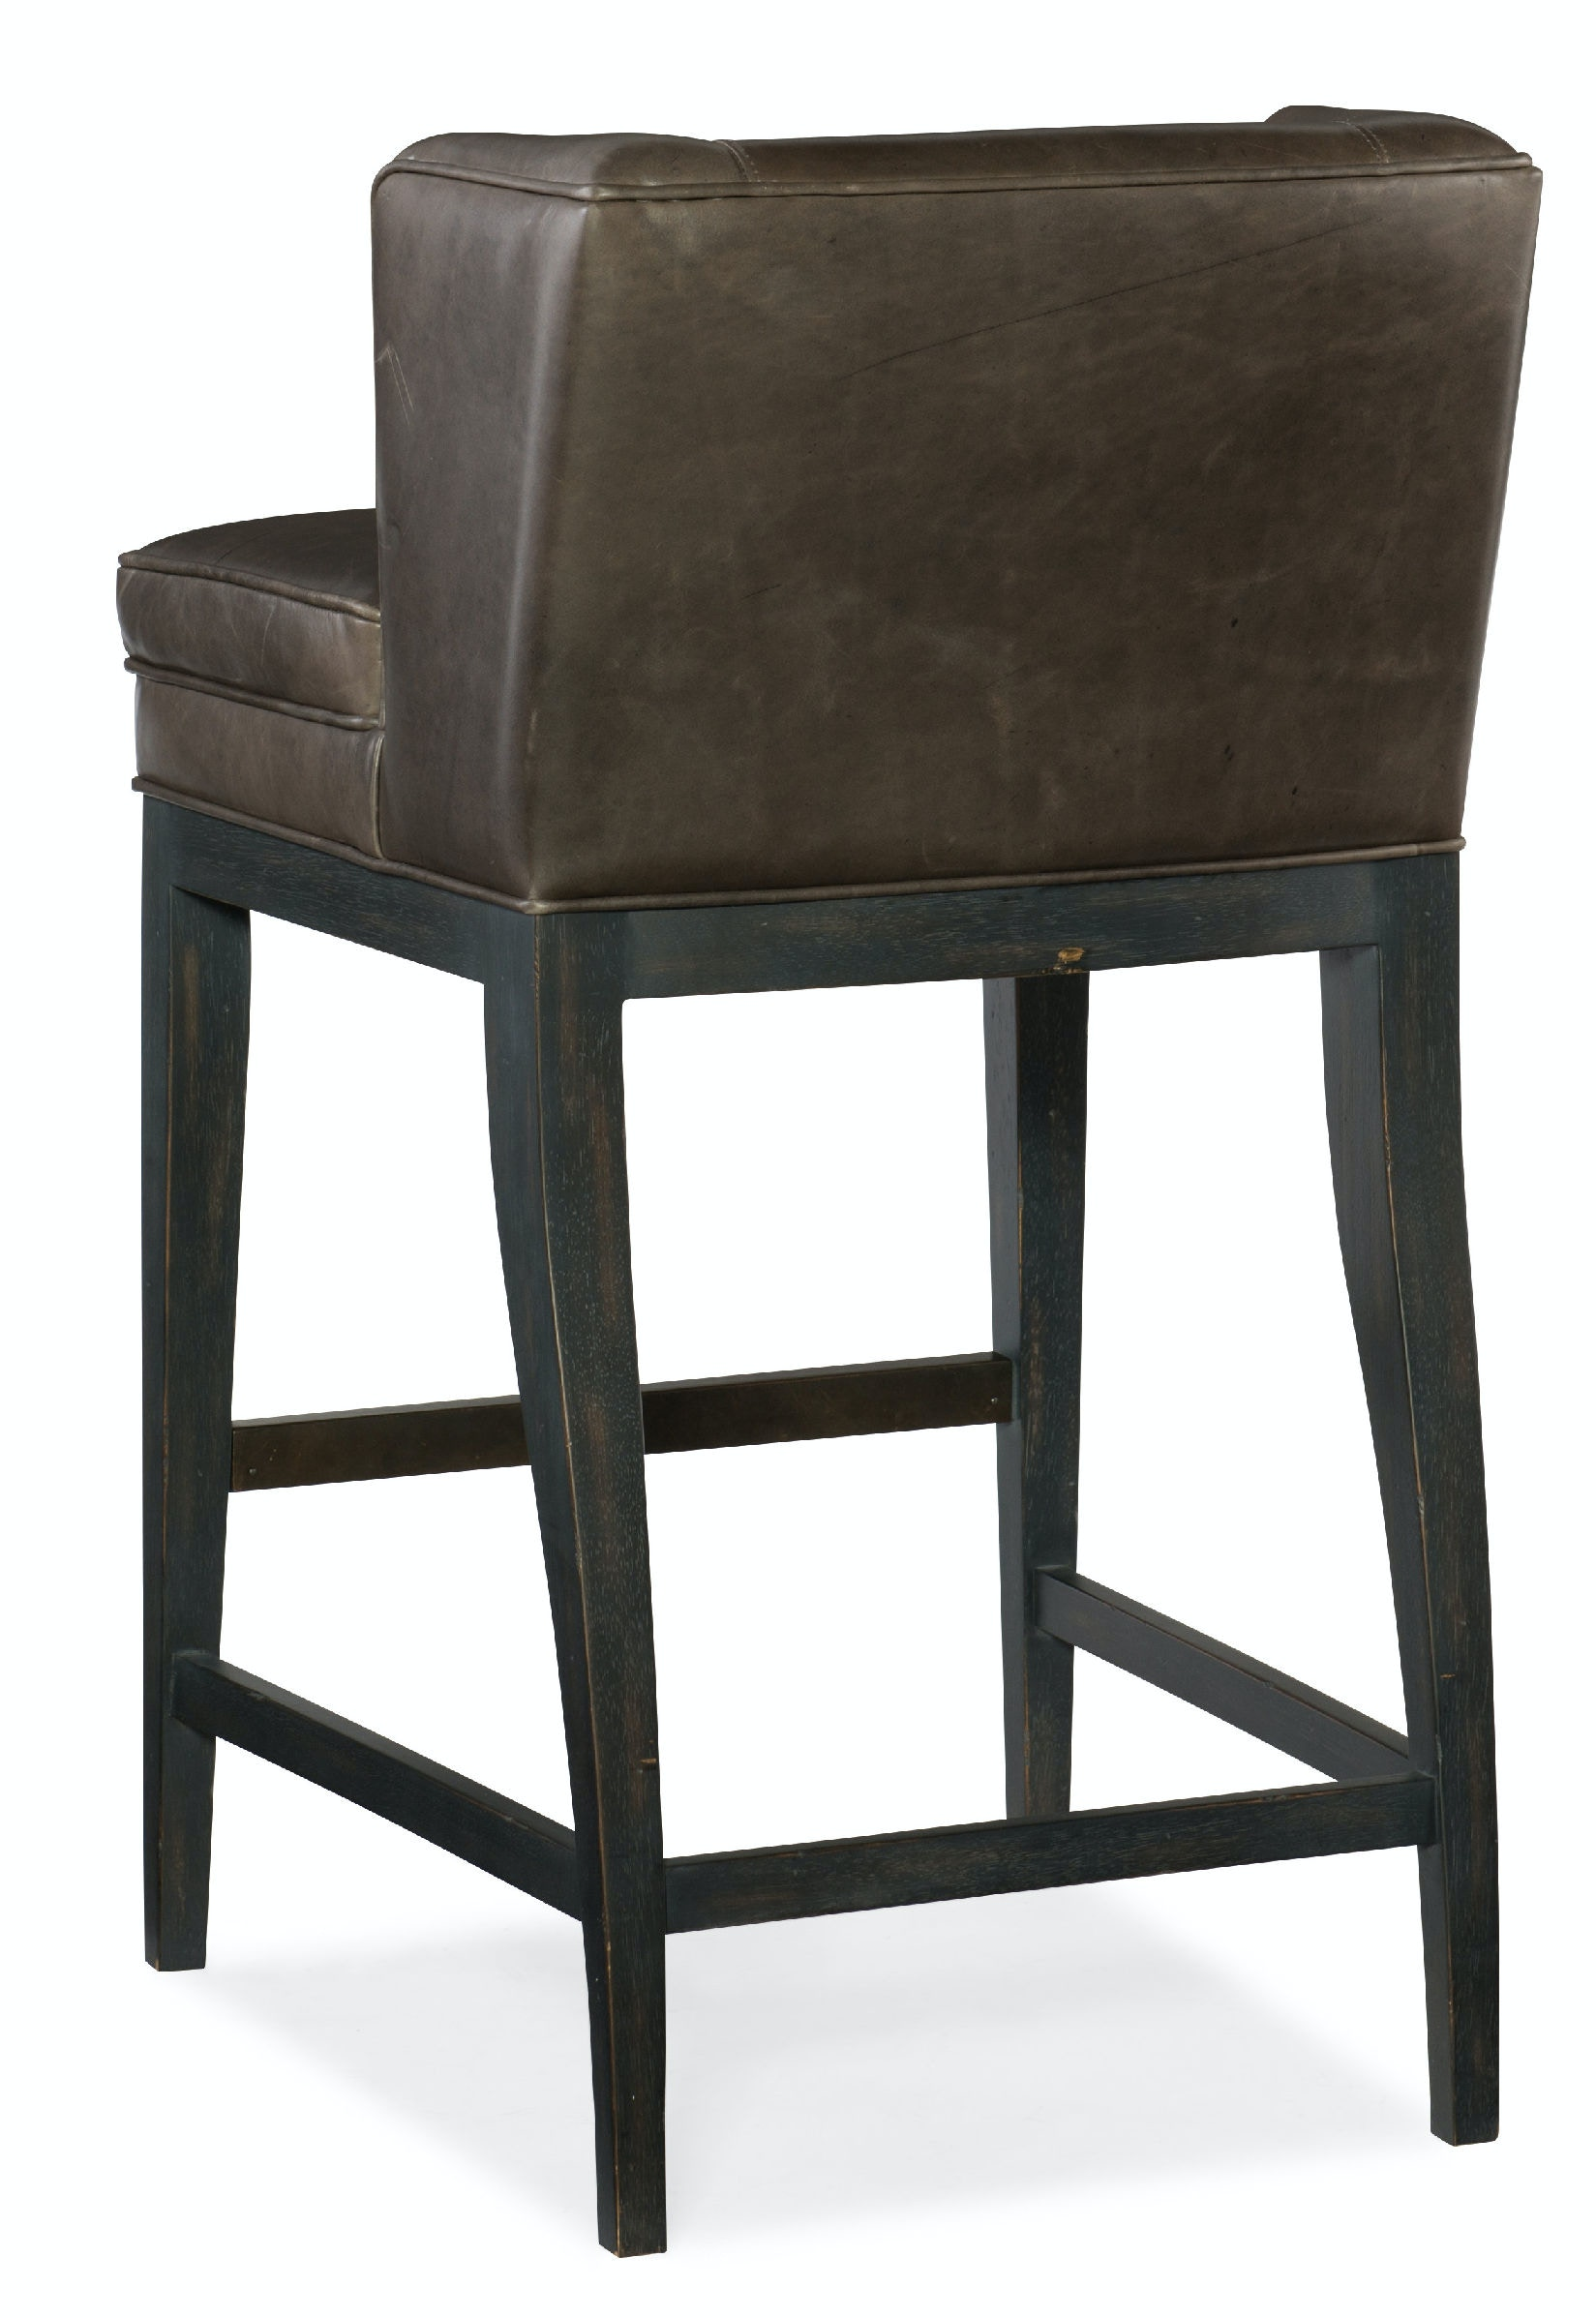 Top Hooker Furniture Jada Barstool Hooker Furniture Room Jada Barstool Bar Stools Kitchen Bar Stools Amazon houzz-02 Contemporary Bar Stools